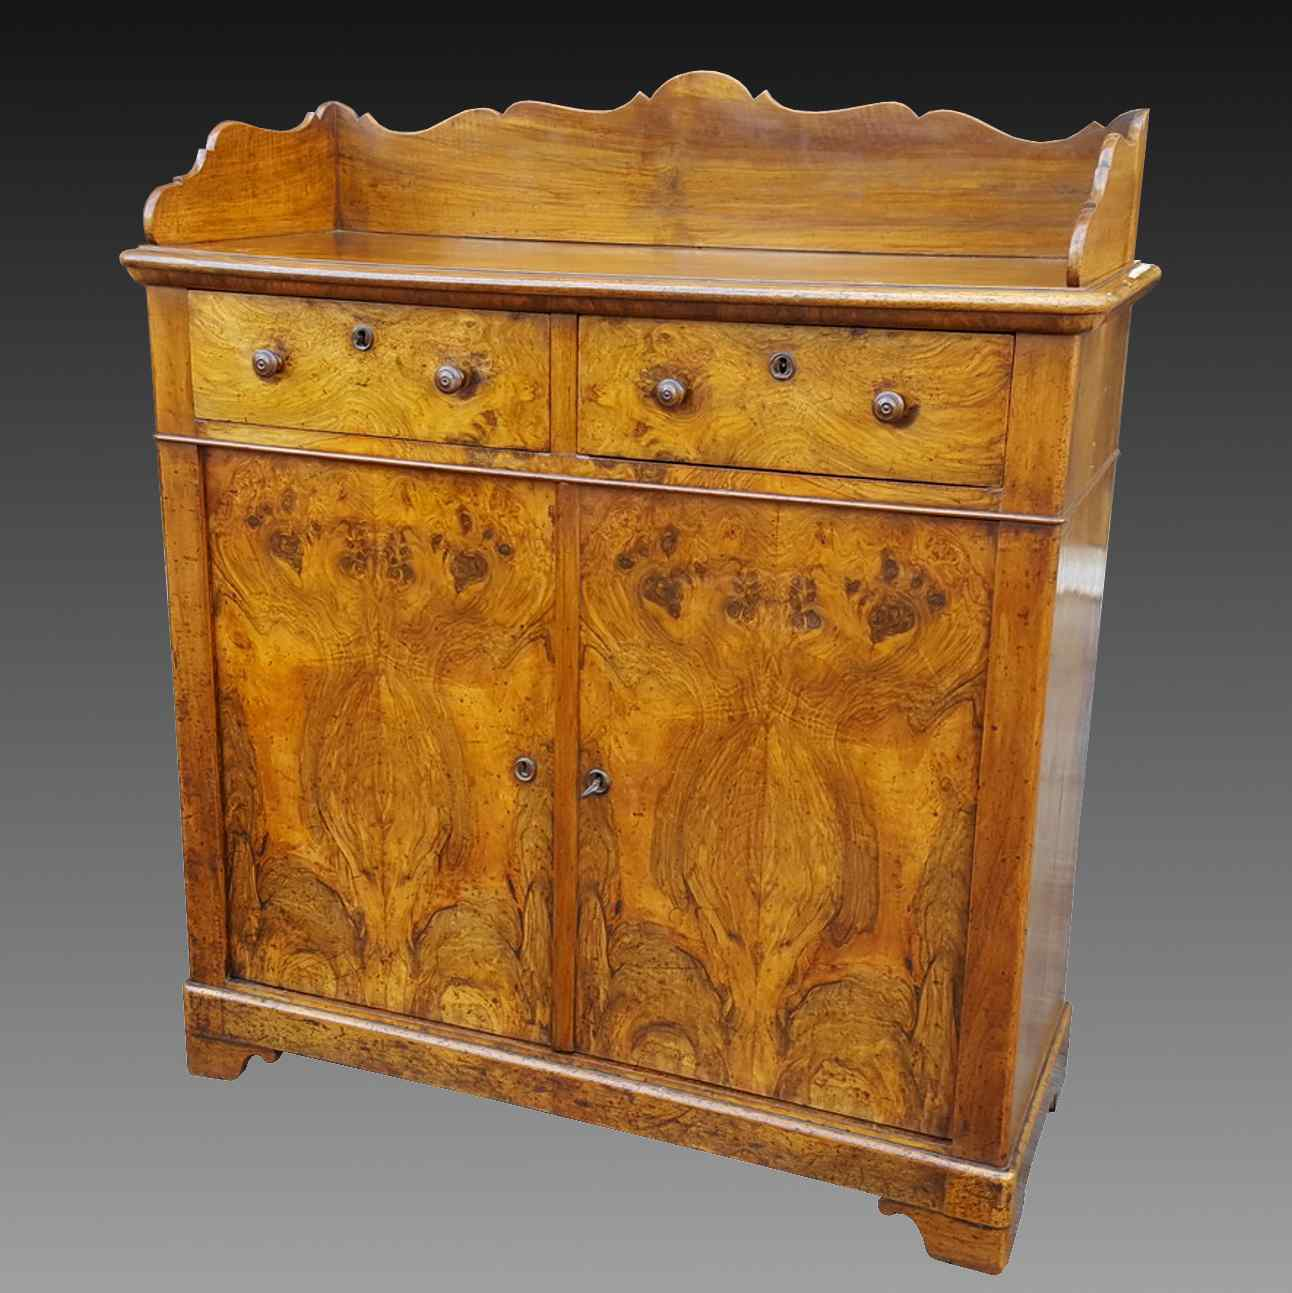 Antique Louis Philippe Sideboard Buffet in walnut - 19th